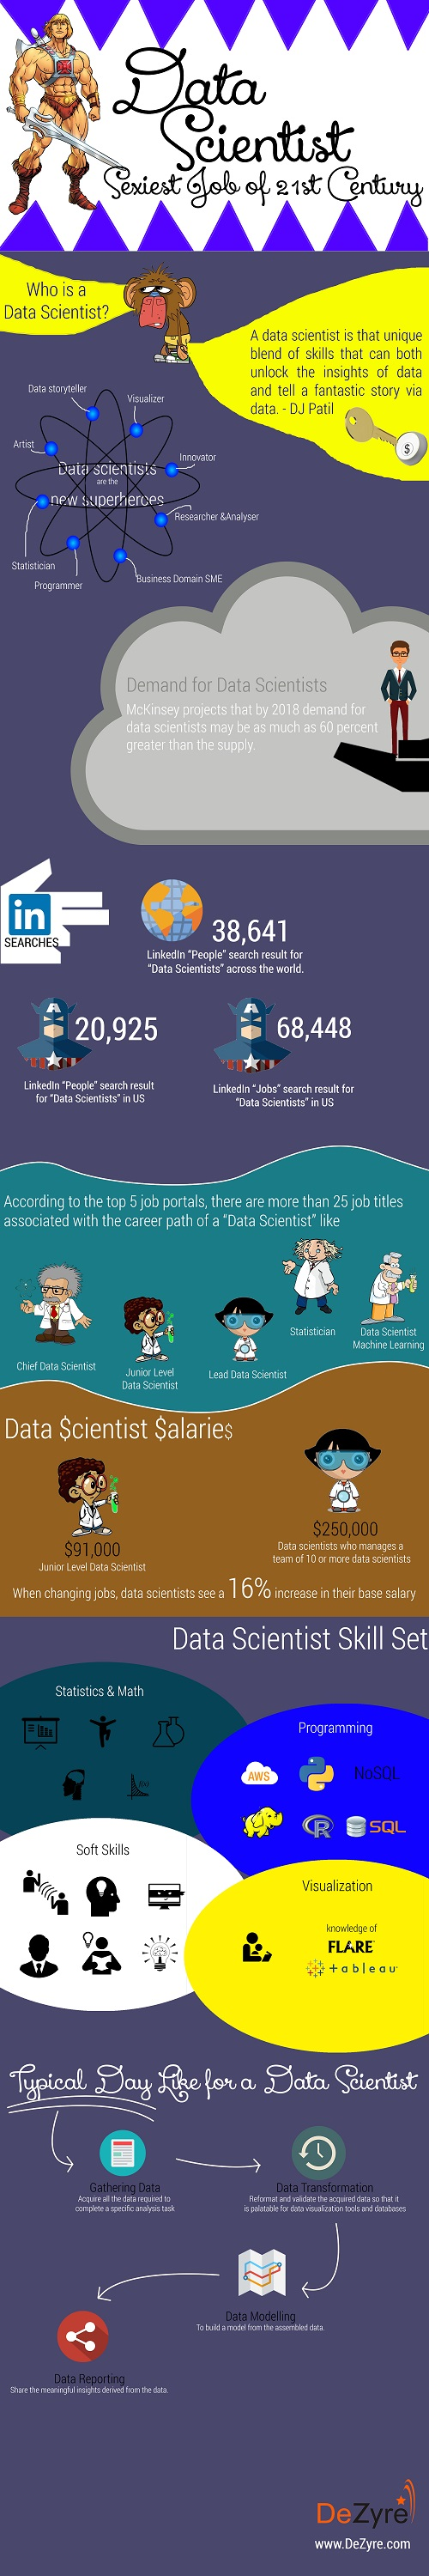 Data Scientist- Sexiest Job of 21st Century